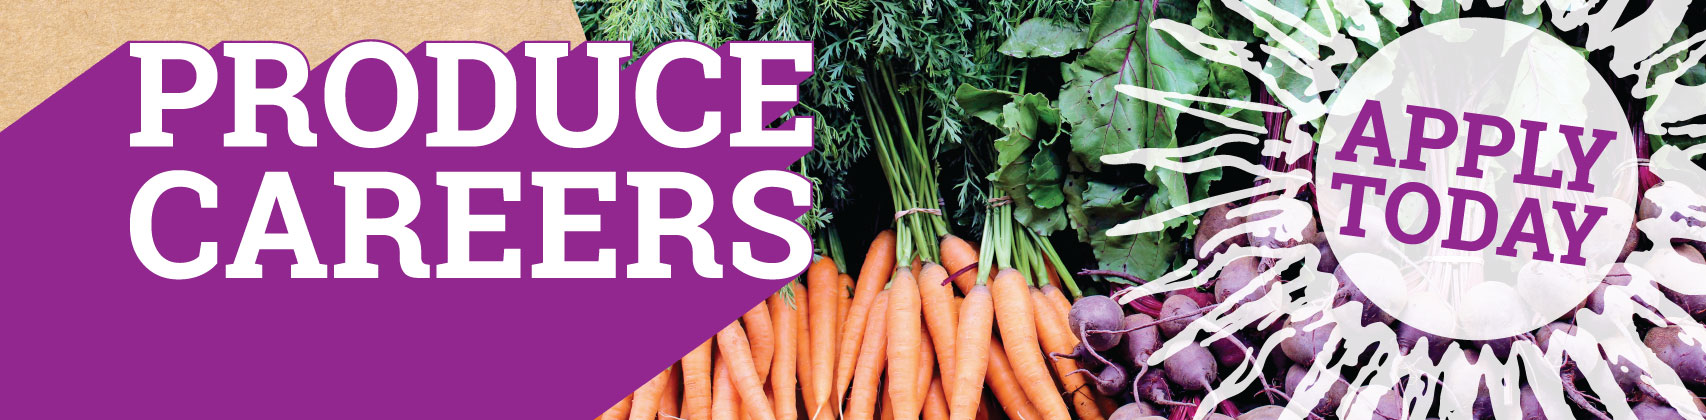 Photo of fresh local root veggies with text that says Produce Careers! Apply today!